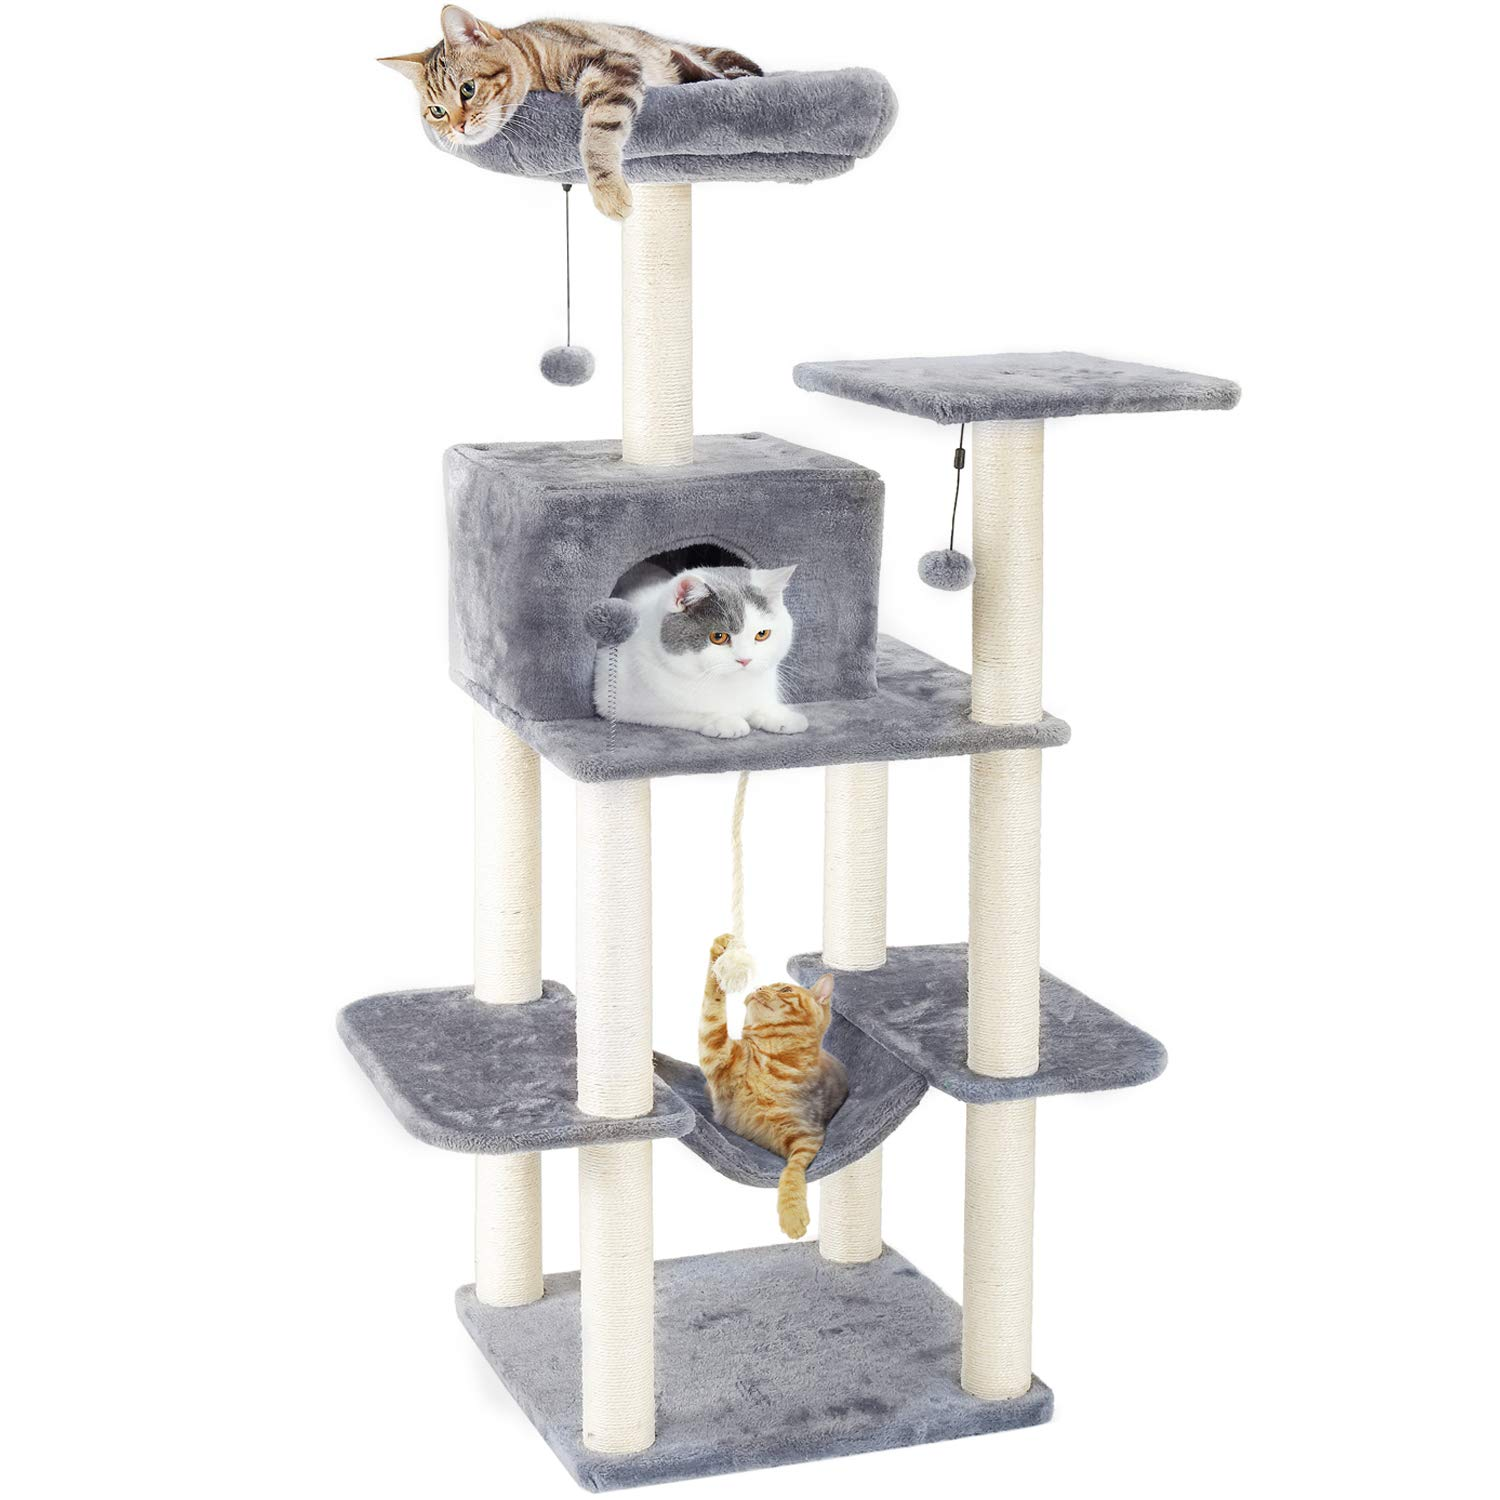 PAWZ Road 60 Inches Cat Tree Multilevel Cat Towers with Luxury Condos,Fully Wrapped Sisal Scratching Post,Plush Hammock and Dangling Balls by PAWZ Road